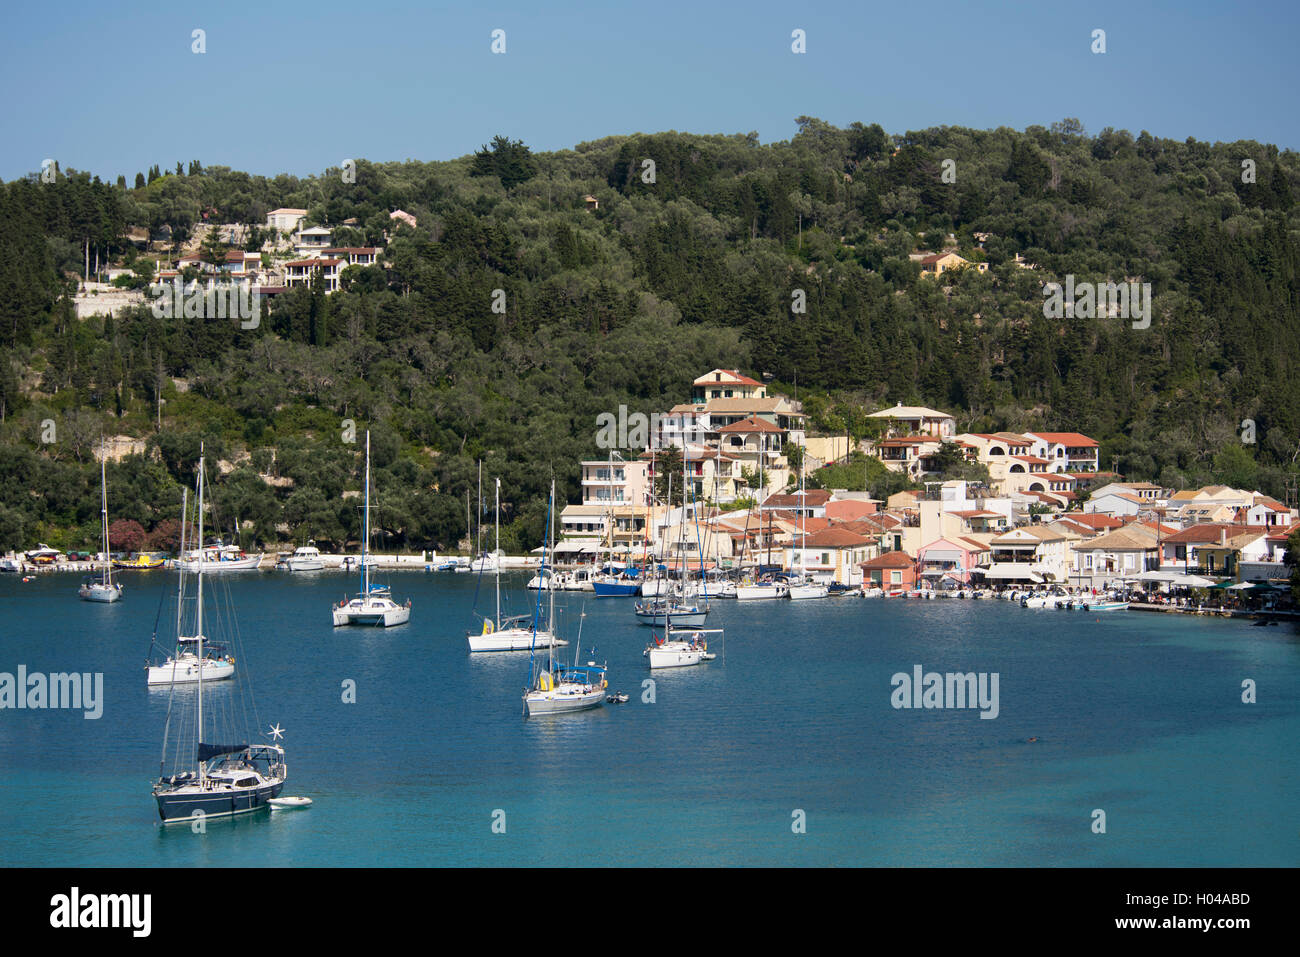 Sailing boats moored in Lakka harbour on Paxos, The Ionian Islands, The Greek Islands, Greece, Europe - Stock Image